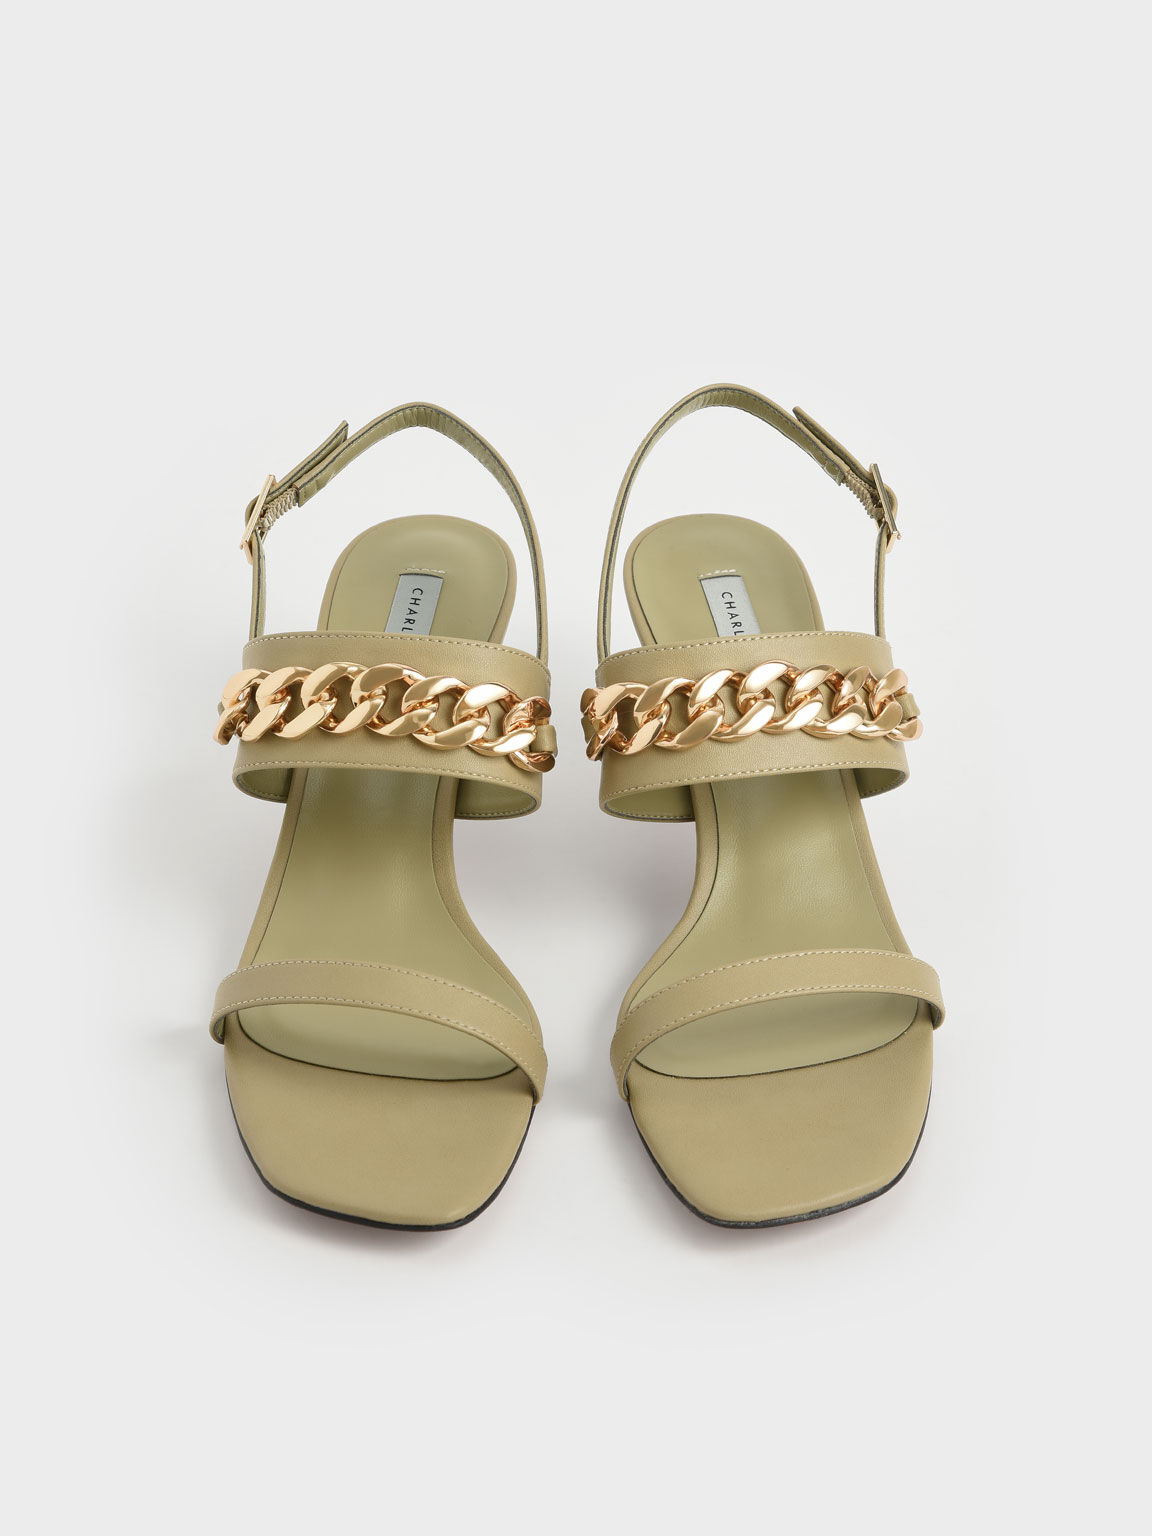 Chain Strap Heeled Sandals, Taupe, hi-res